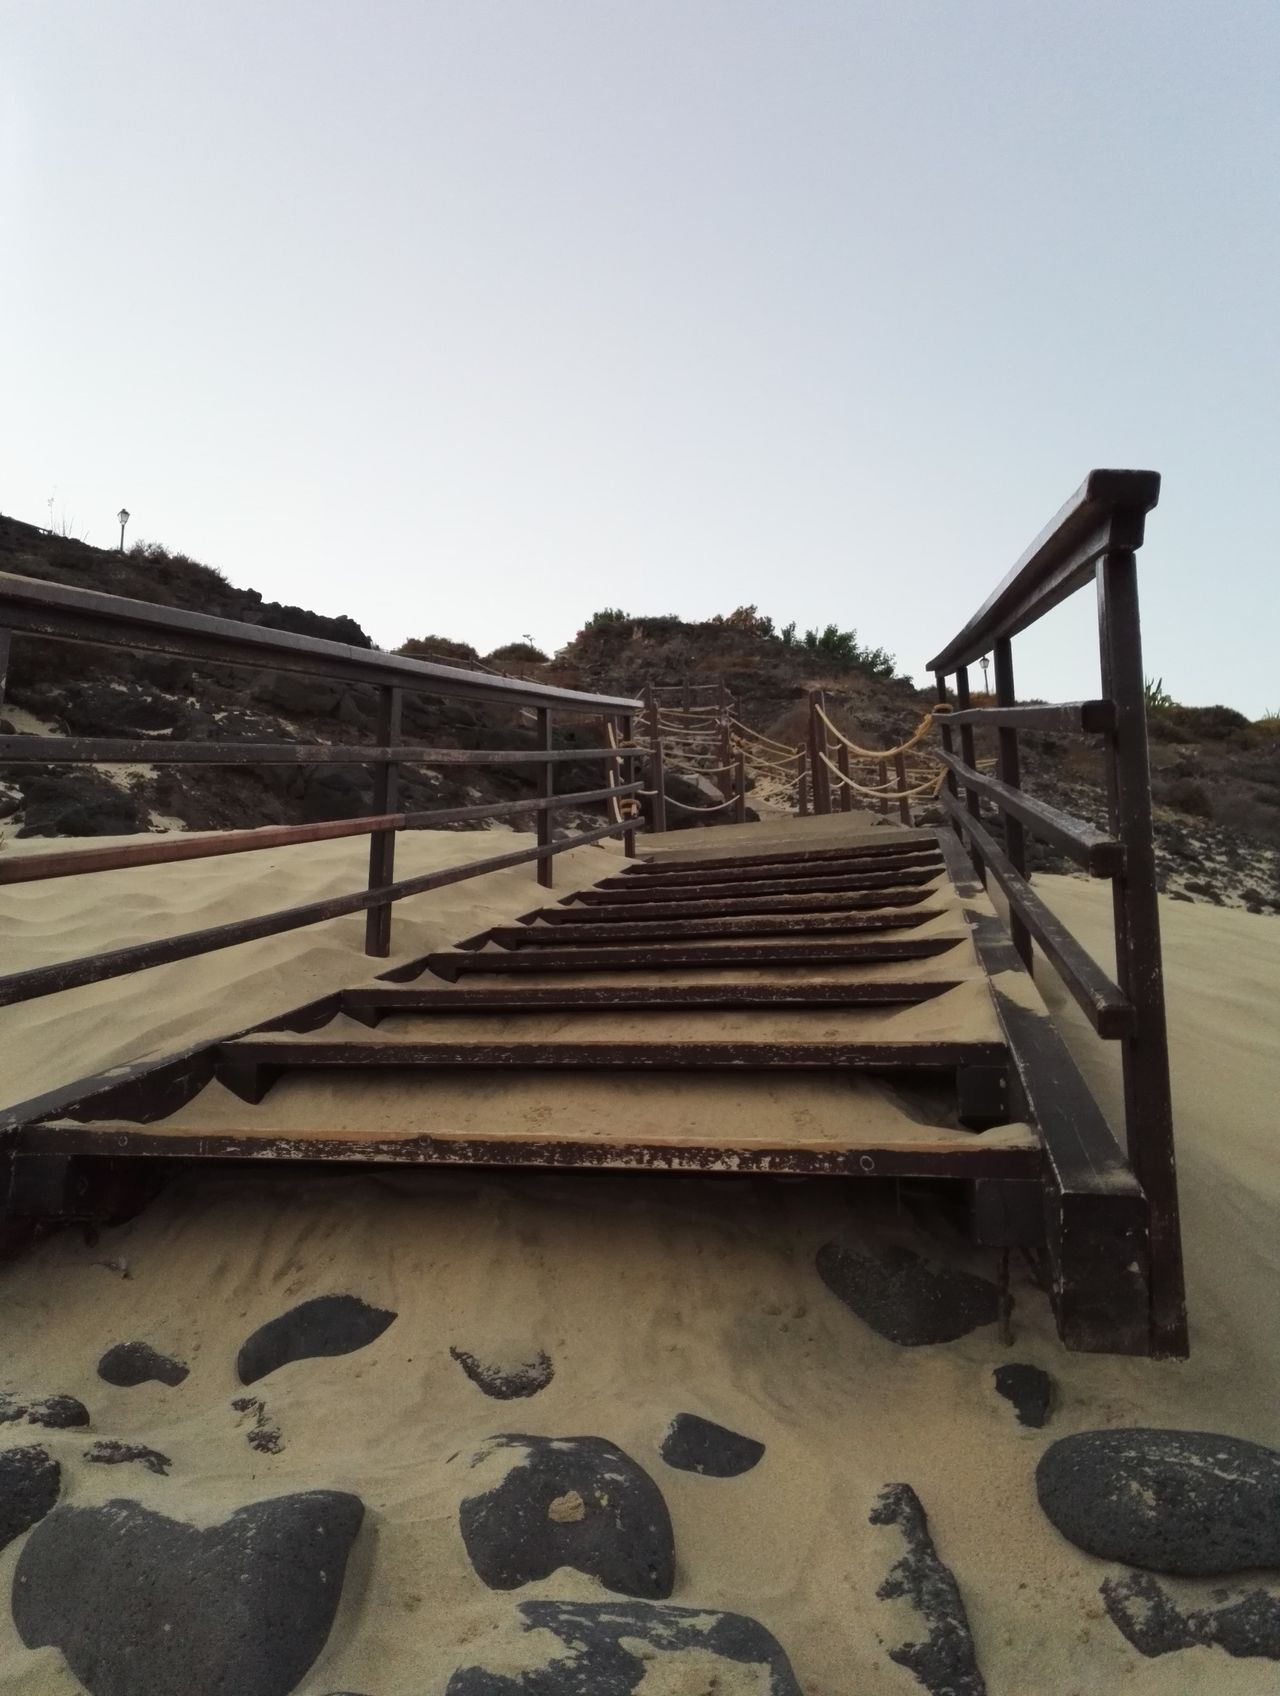 Clear Sky Outdoors Sky No People Nature Day Tranquility Vacation NewToEyeEm Fuerteventura Tui Magic Life Waves, Ocean, Nature SPAIN Atlantic Ocean Landscape Sand Way To The Beach Pathway Ladder Beatiful Nature Relaxing Great Place Wooden Structure Concrete Structure Sea